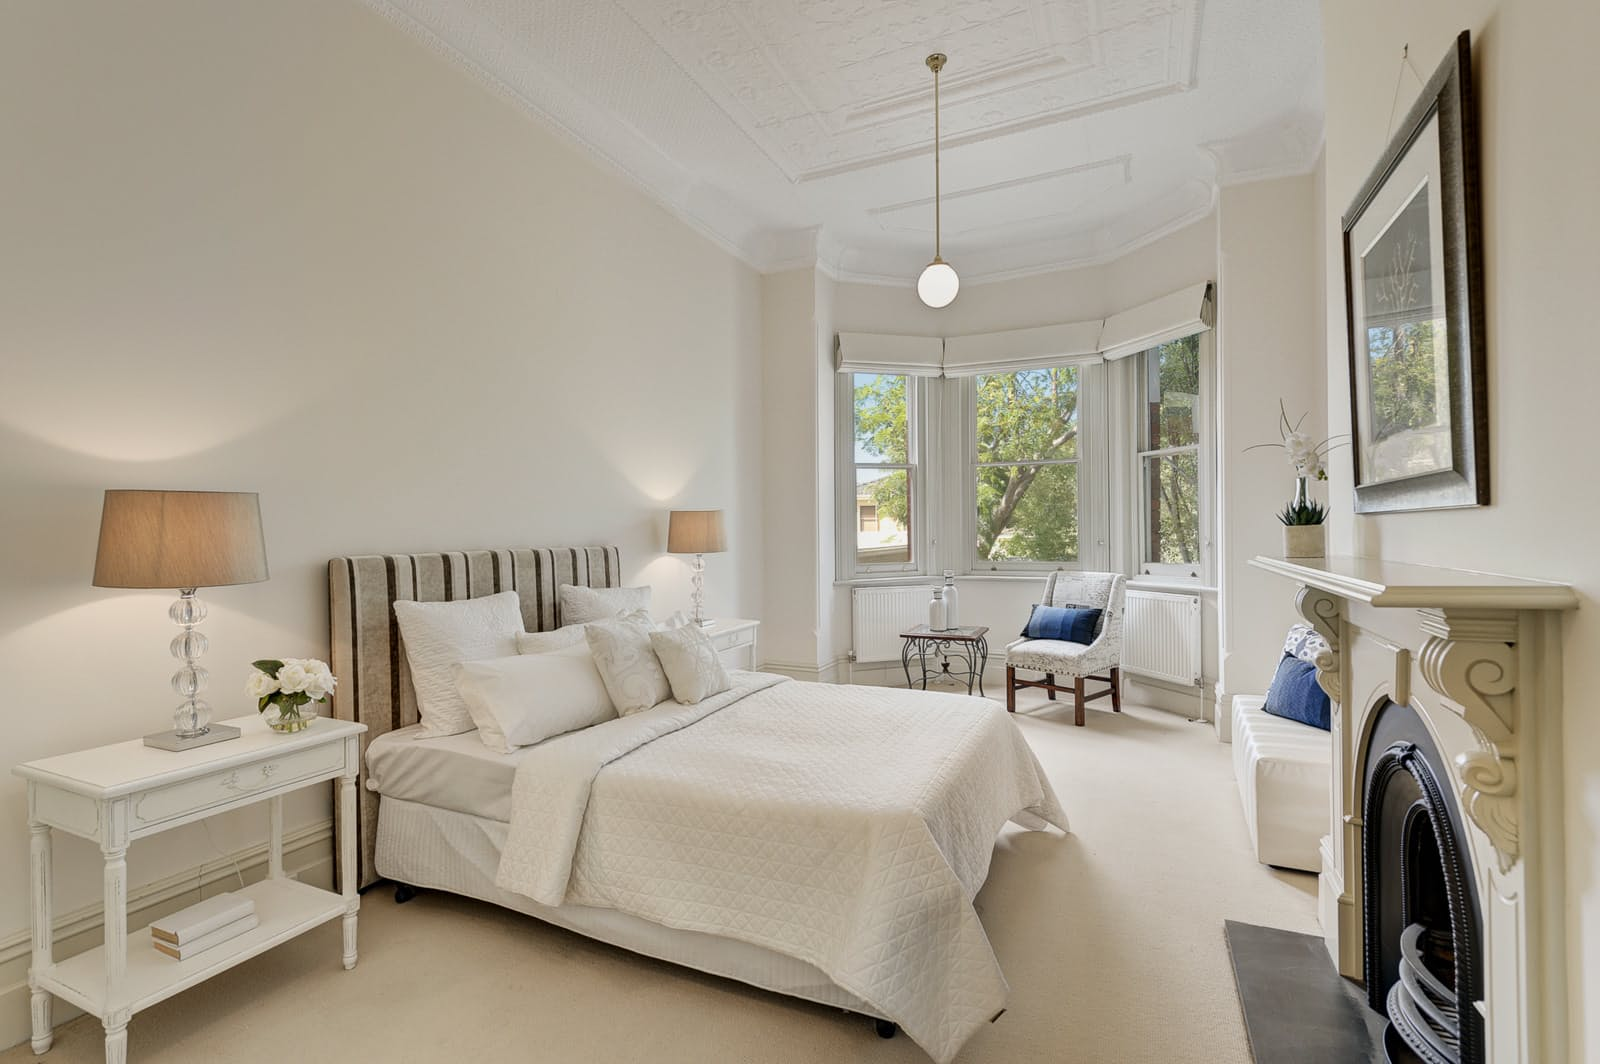 Melbourne Home Details Home styling period bedroom fresh